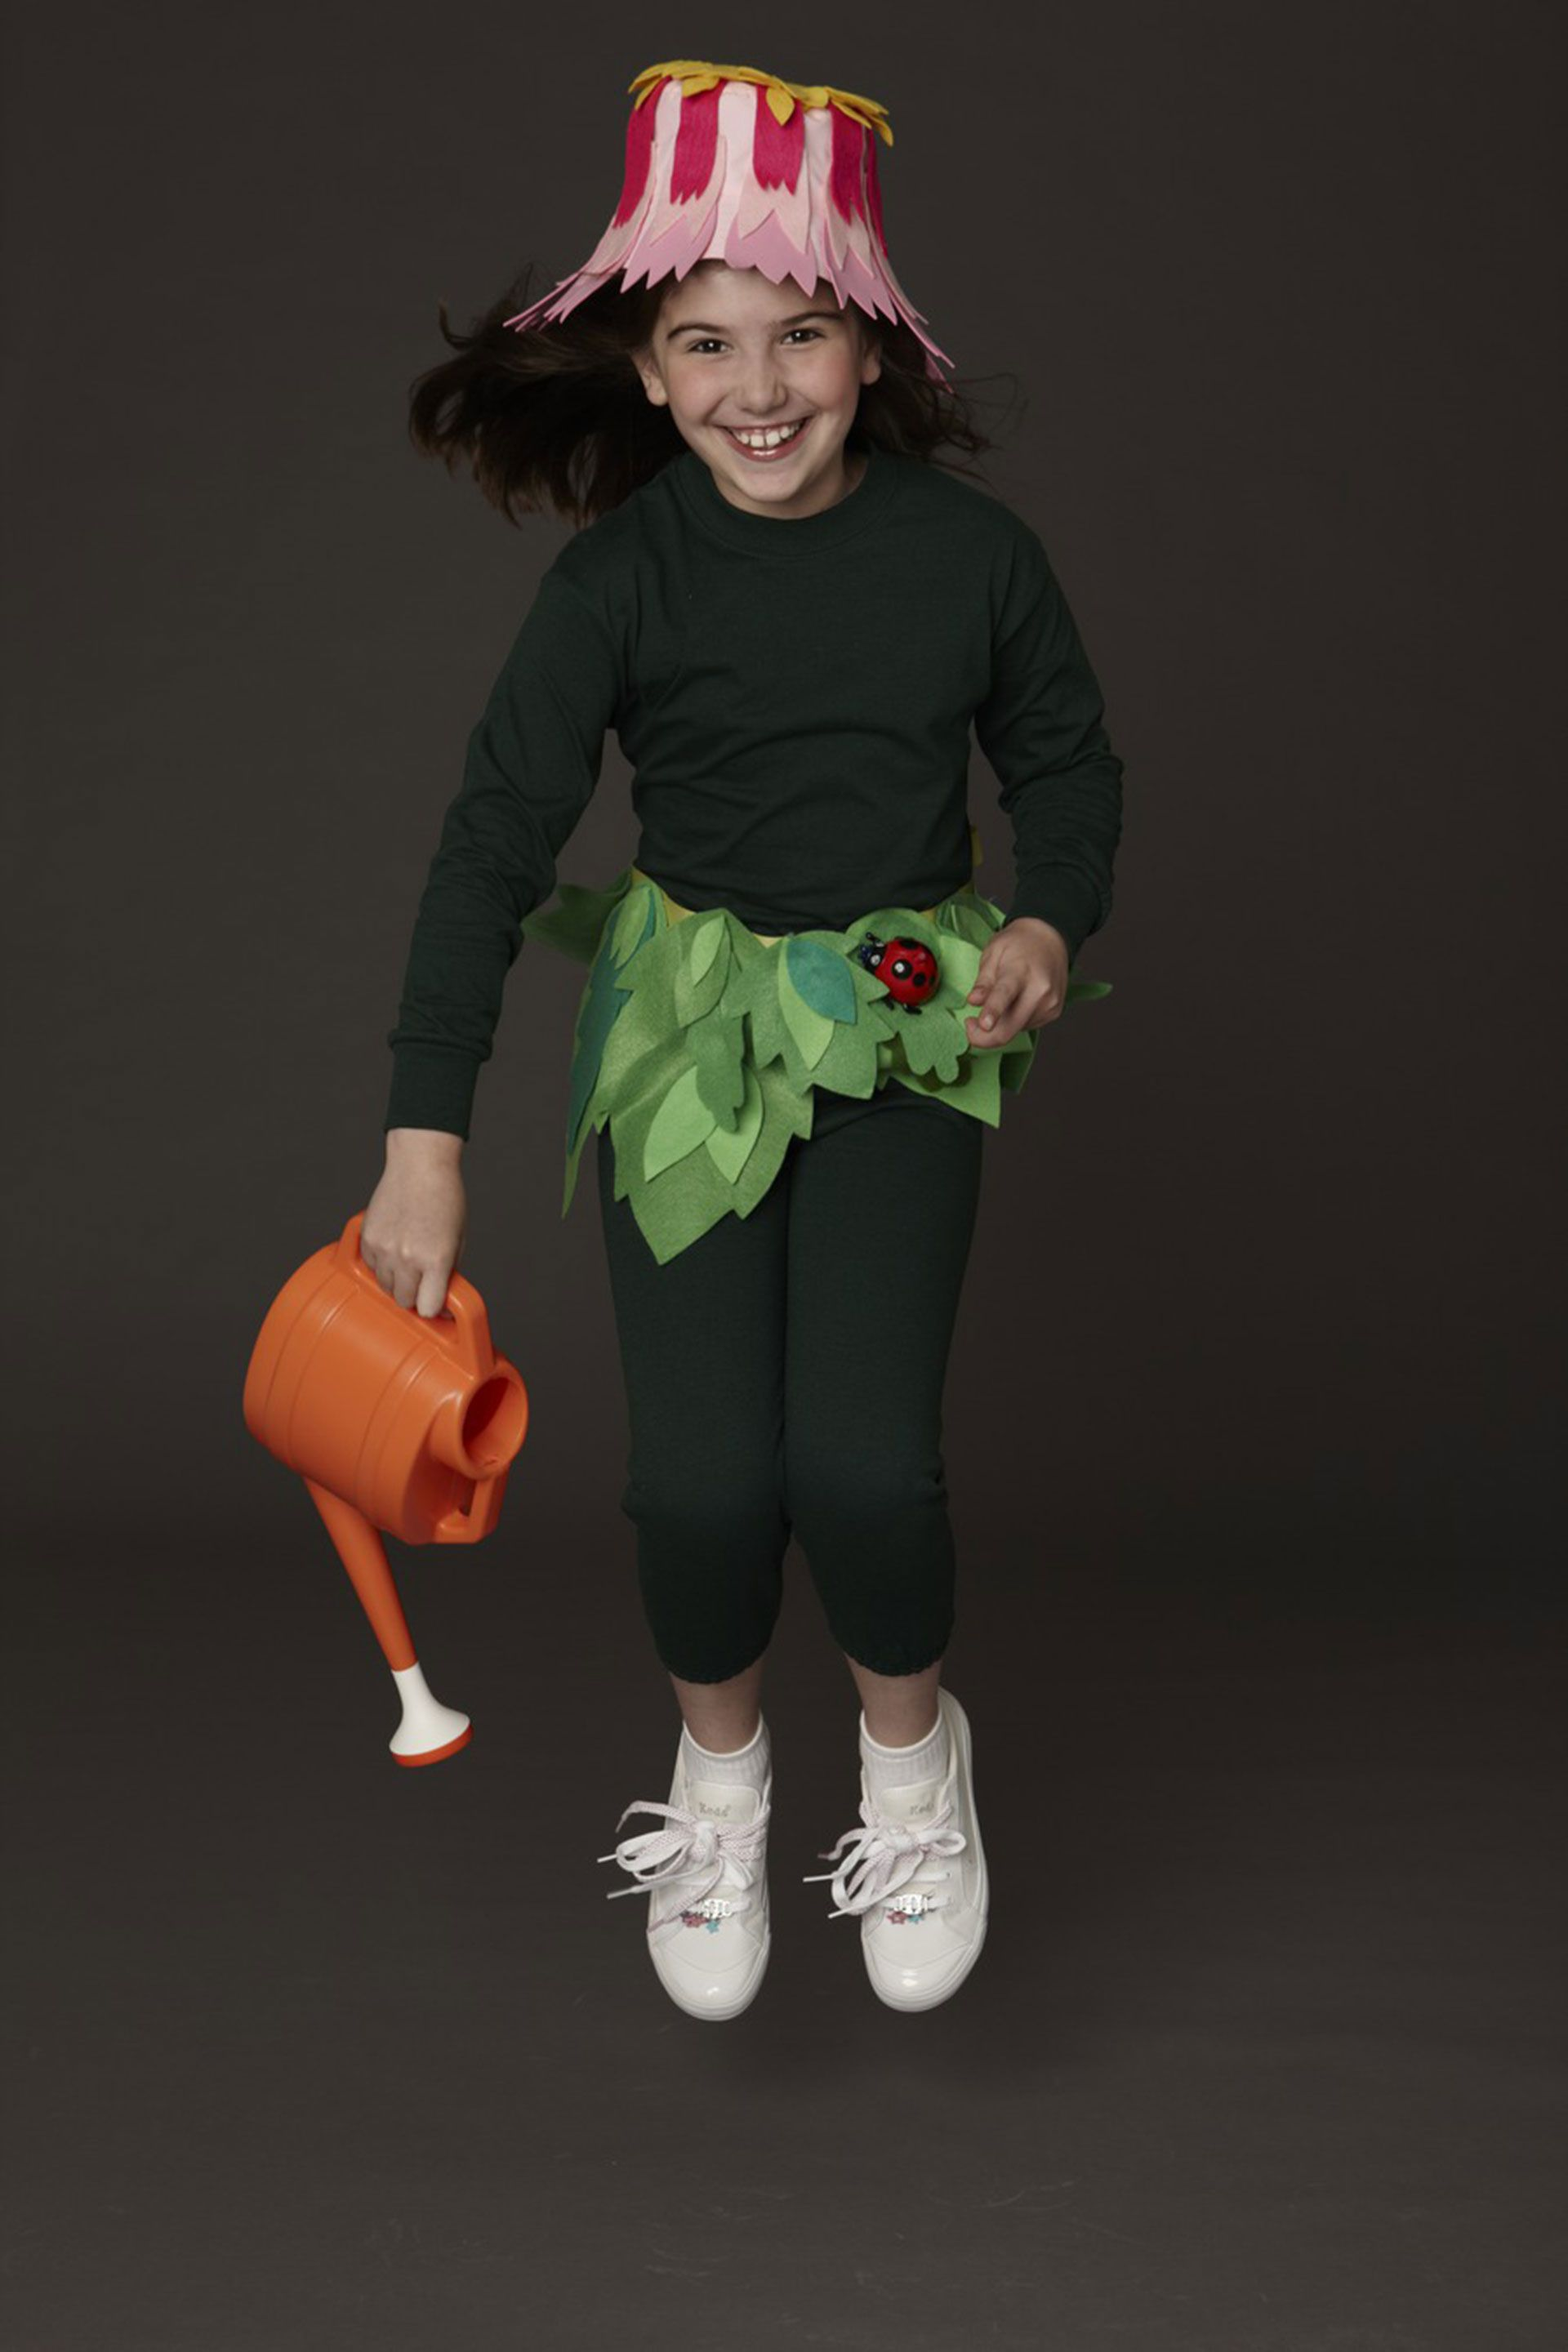 15 homemade halloween costumes for kids - diy ideas for kids costumes